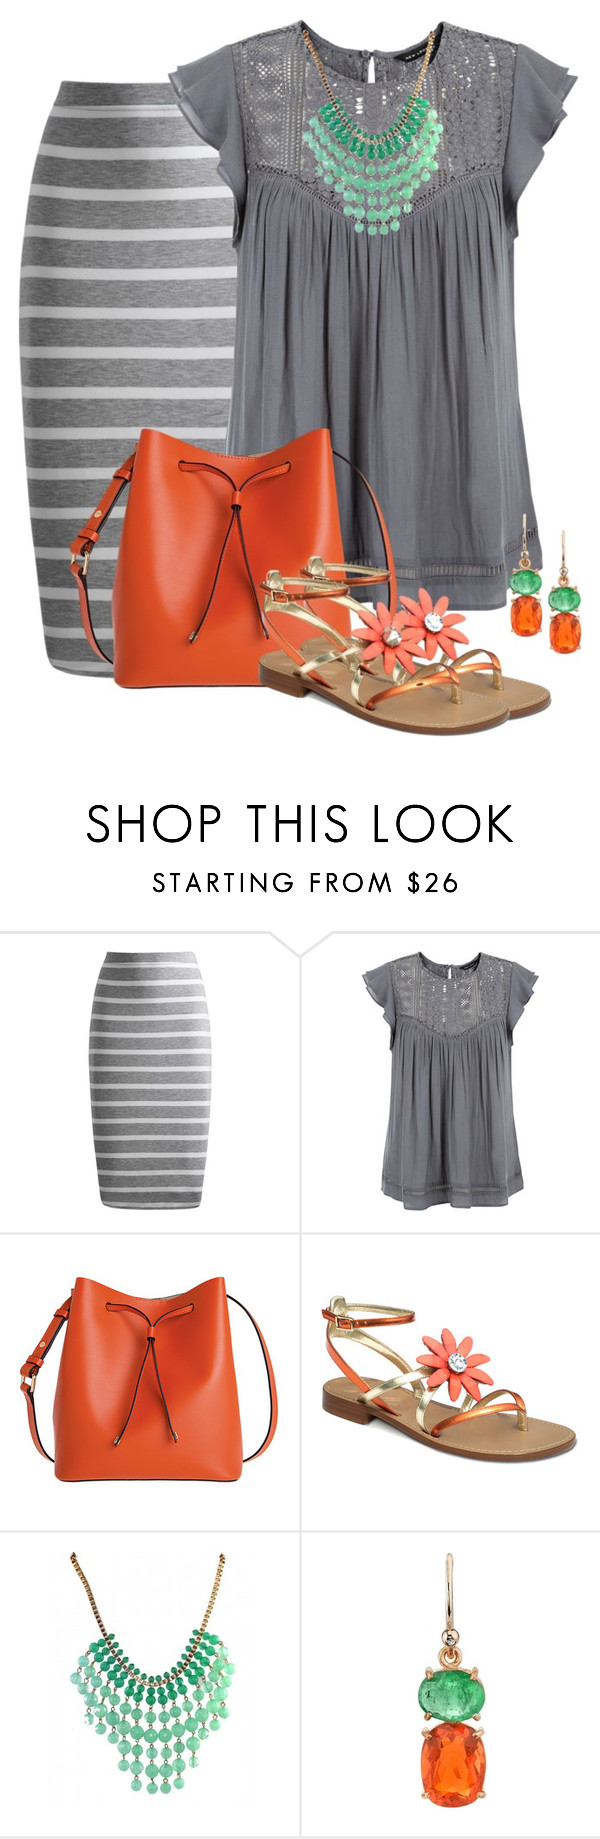 """""""Untitled #2539"""" by jodilambdin ❤ liked on Polyvore featuring Joules, New Look, Lodis and Irene Neuwirth"""